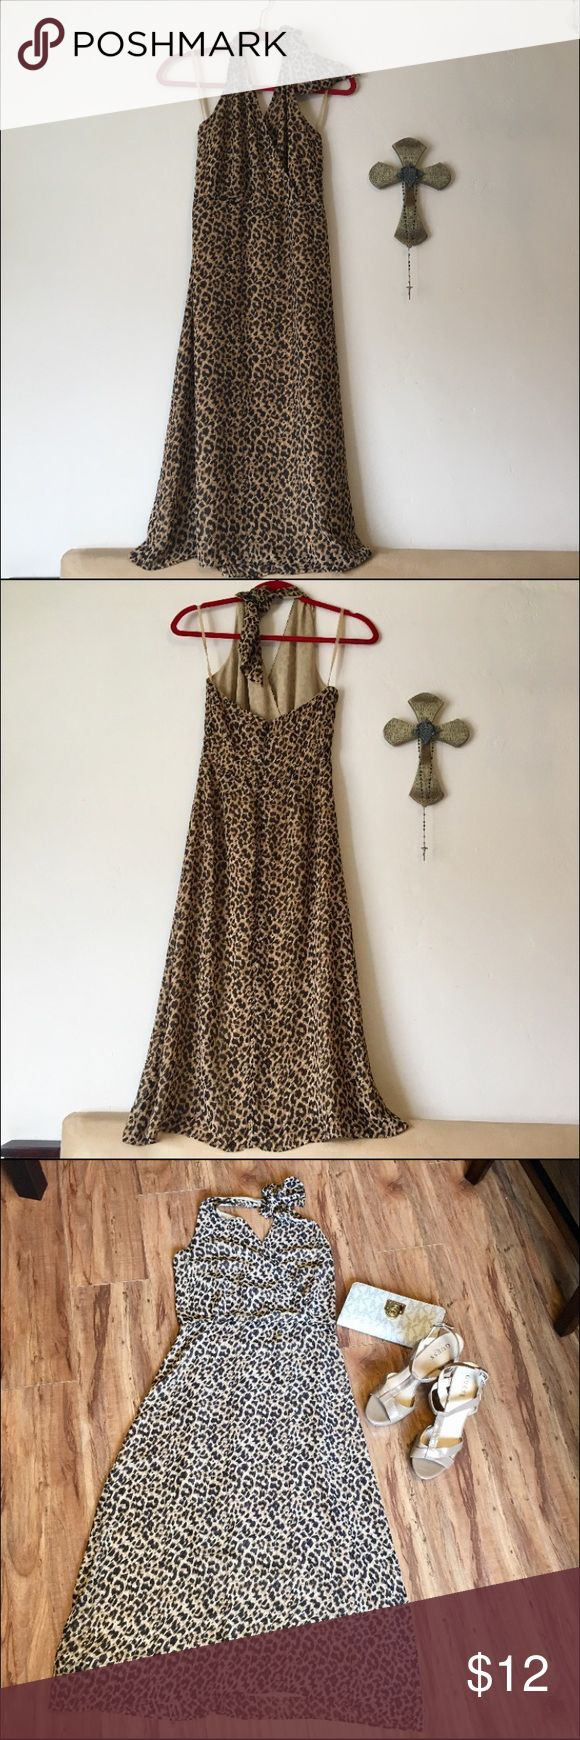 Mercer & Madison Dress Mercer & Madison Cheetah Print Dress. Size: 4  Gorgeous flow to this dress. Just doesn't fit. My aunt bless her heart thought I was a size 4. Mercer & Madison Dresses Midi